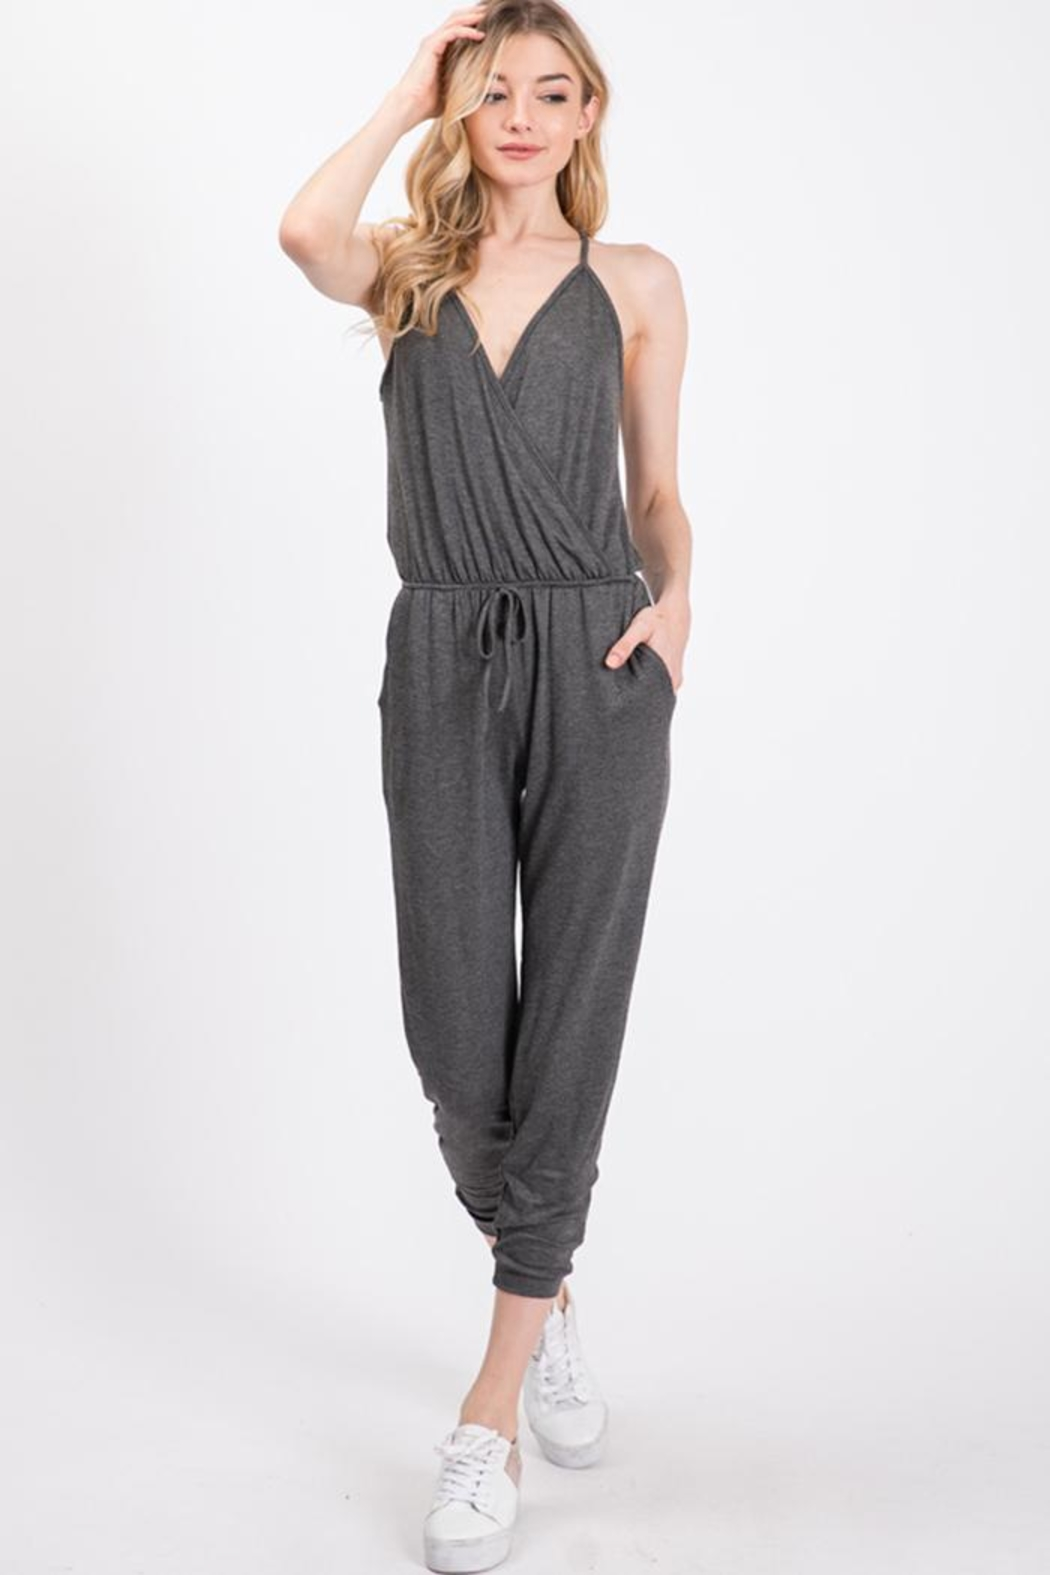 Wasabi + Mint Grey Knit Jumpsuit - Front Cropped Image